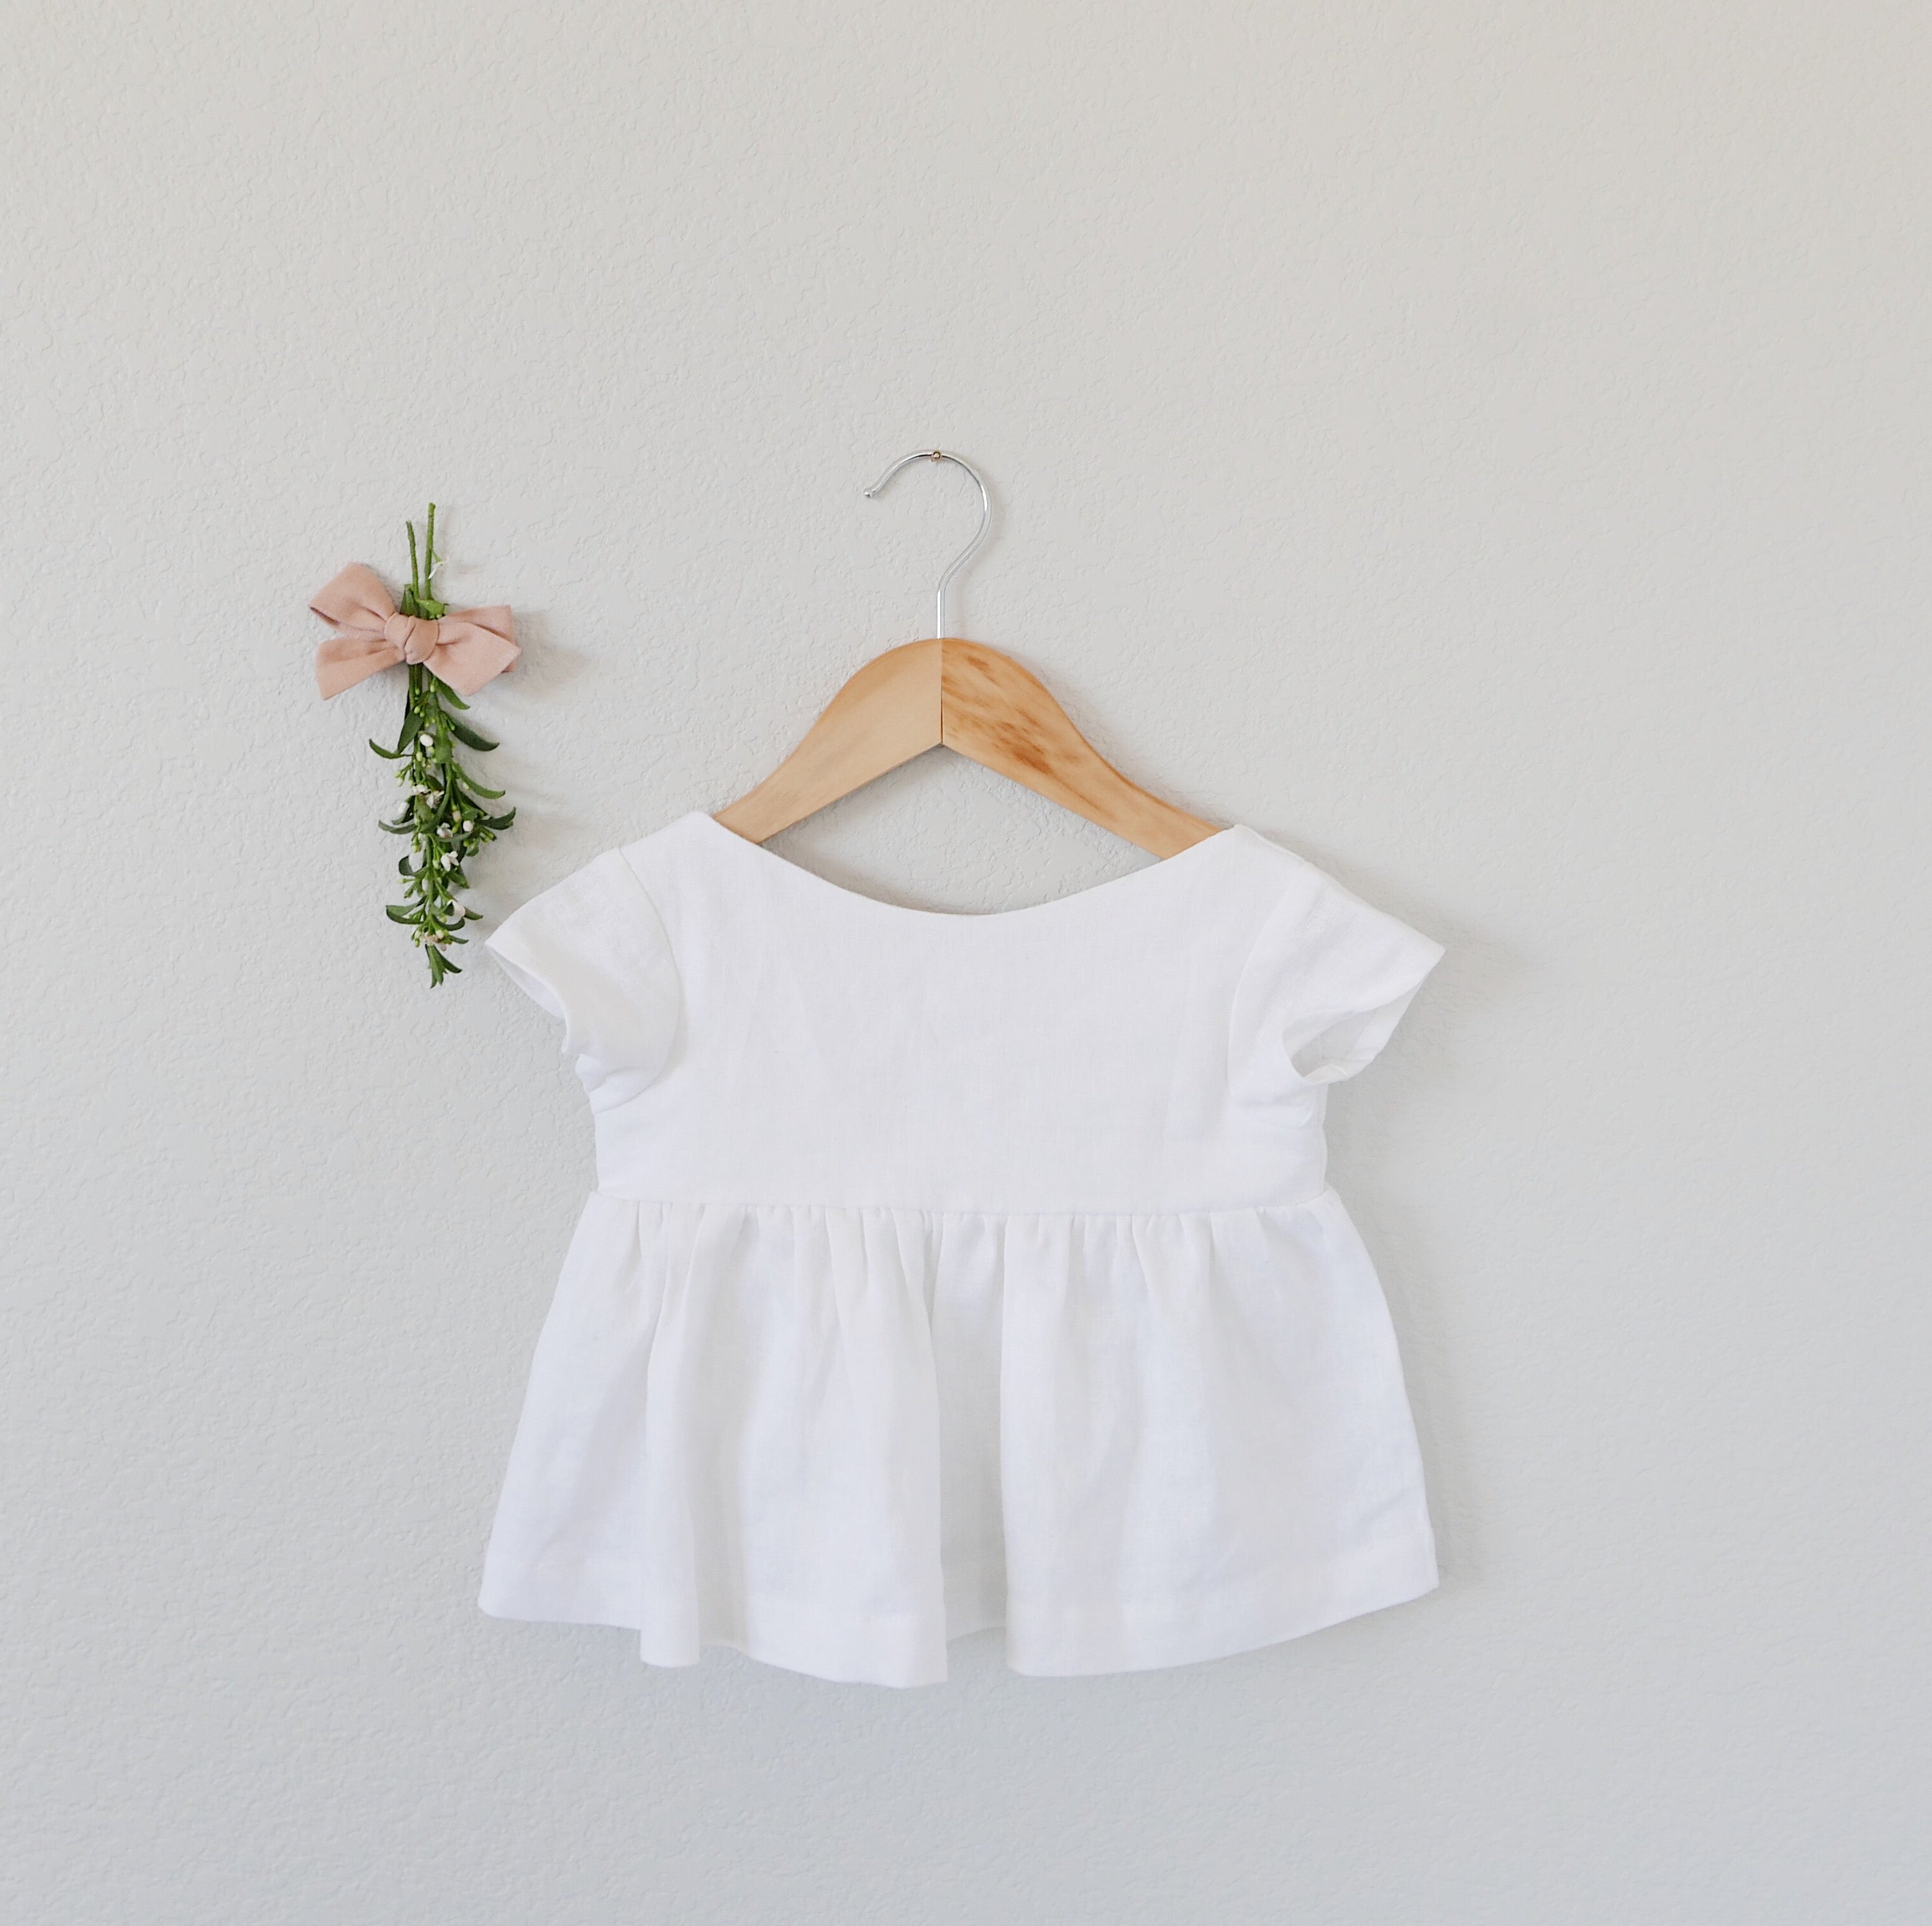 Lilly White - Holland Blouse